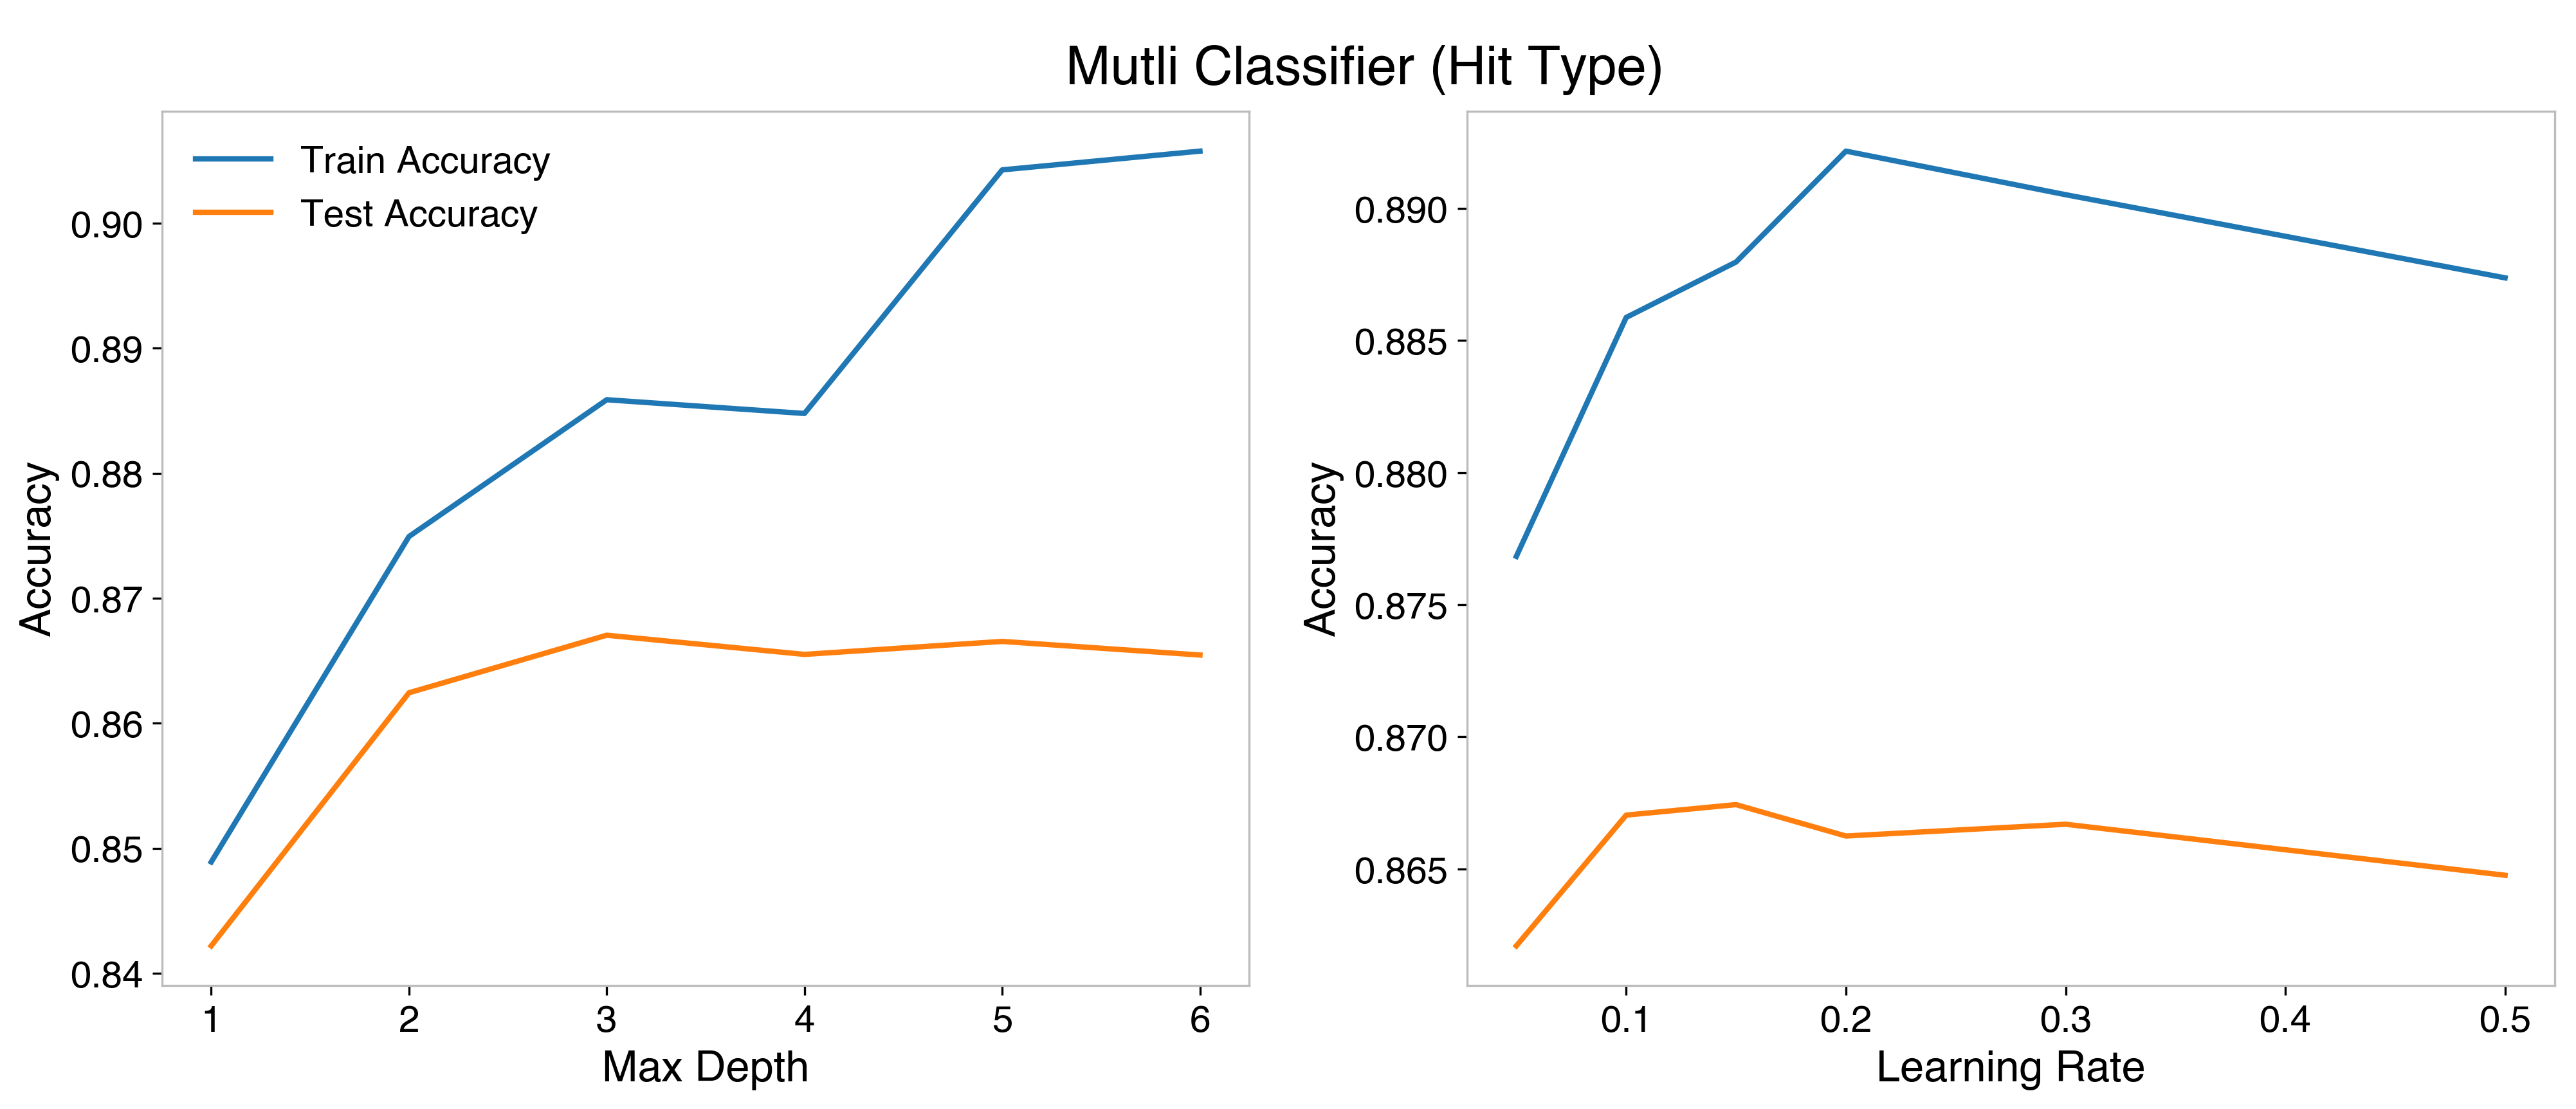 HP optimization for the multi classifier